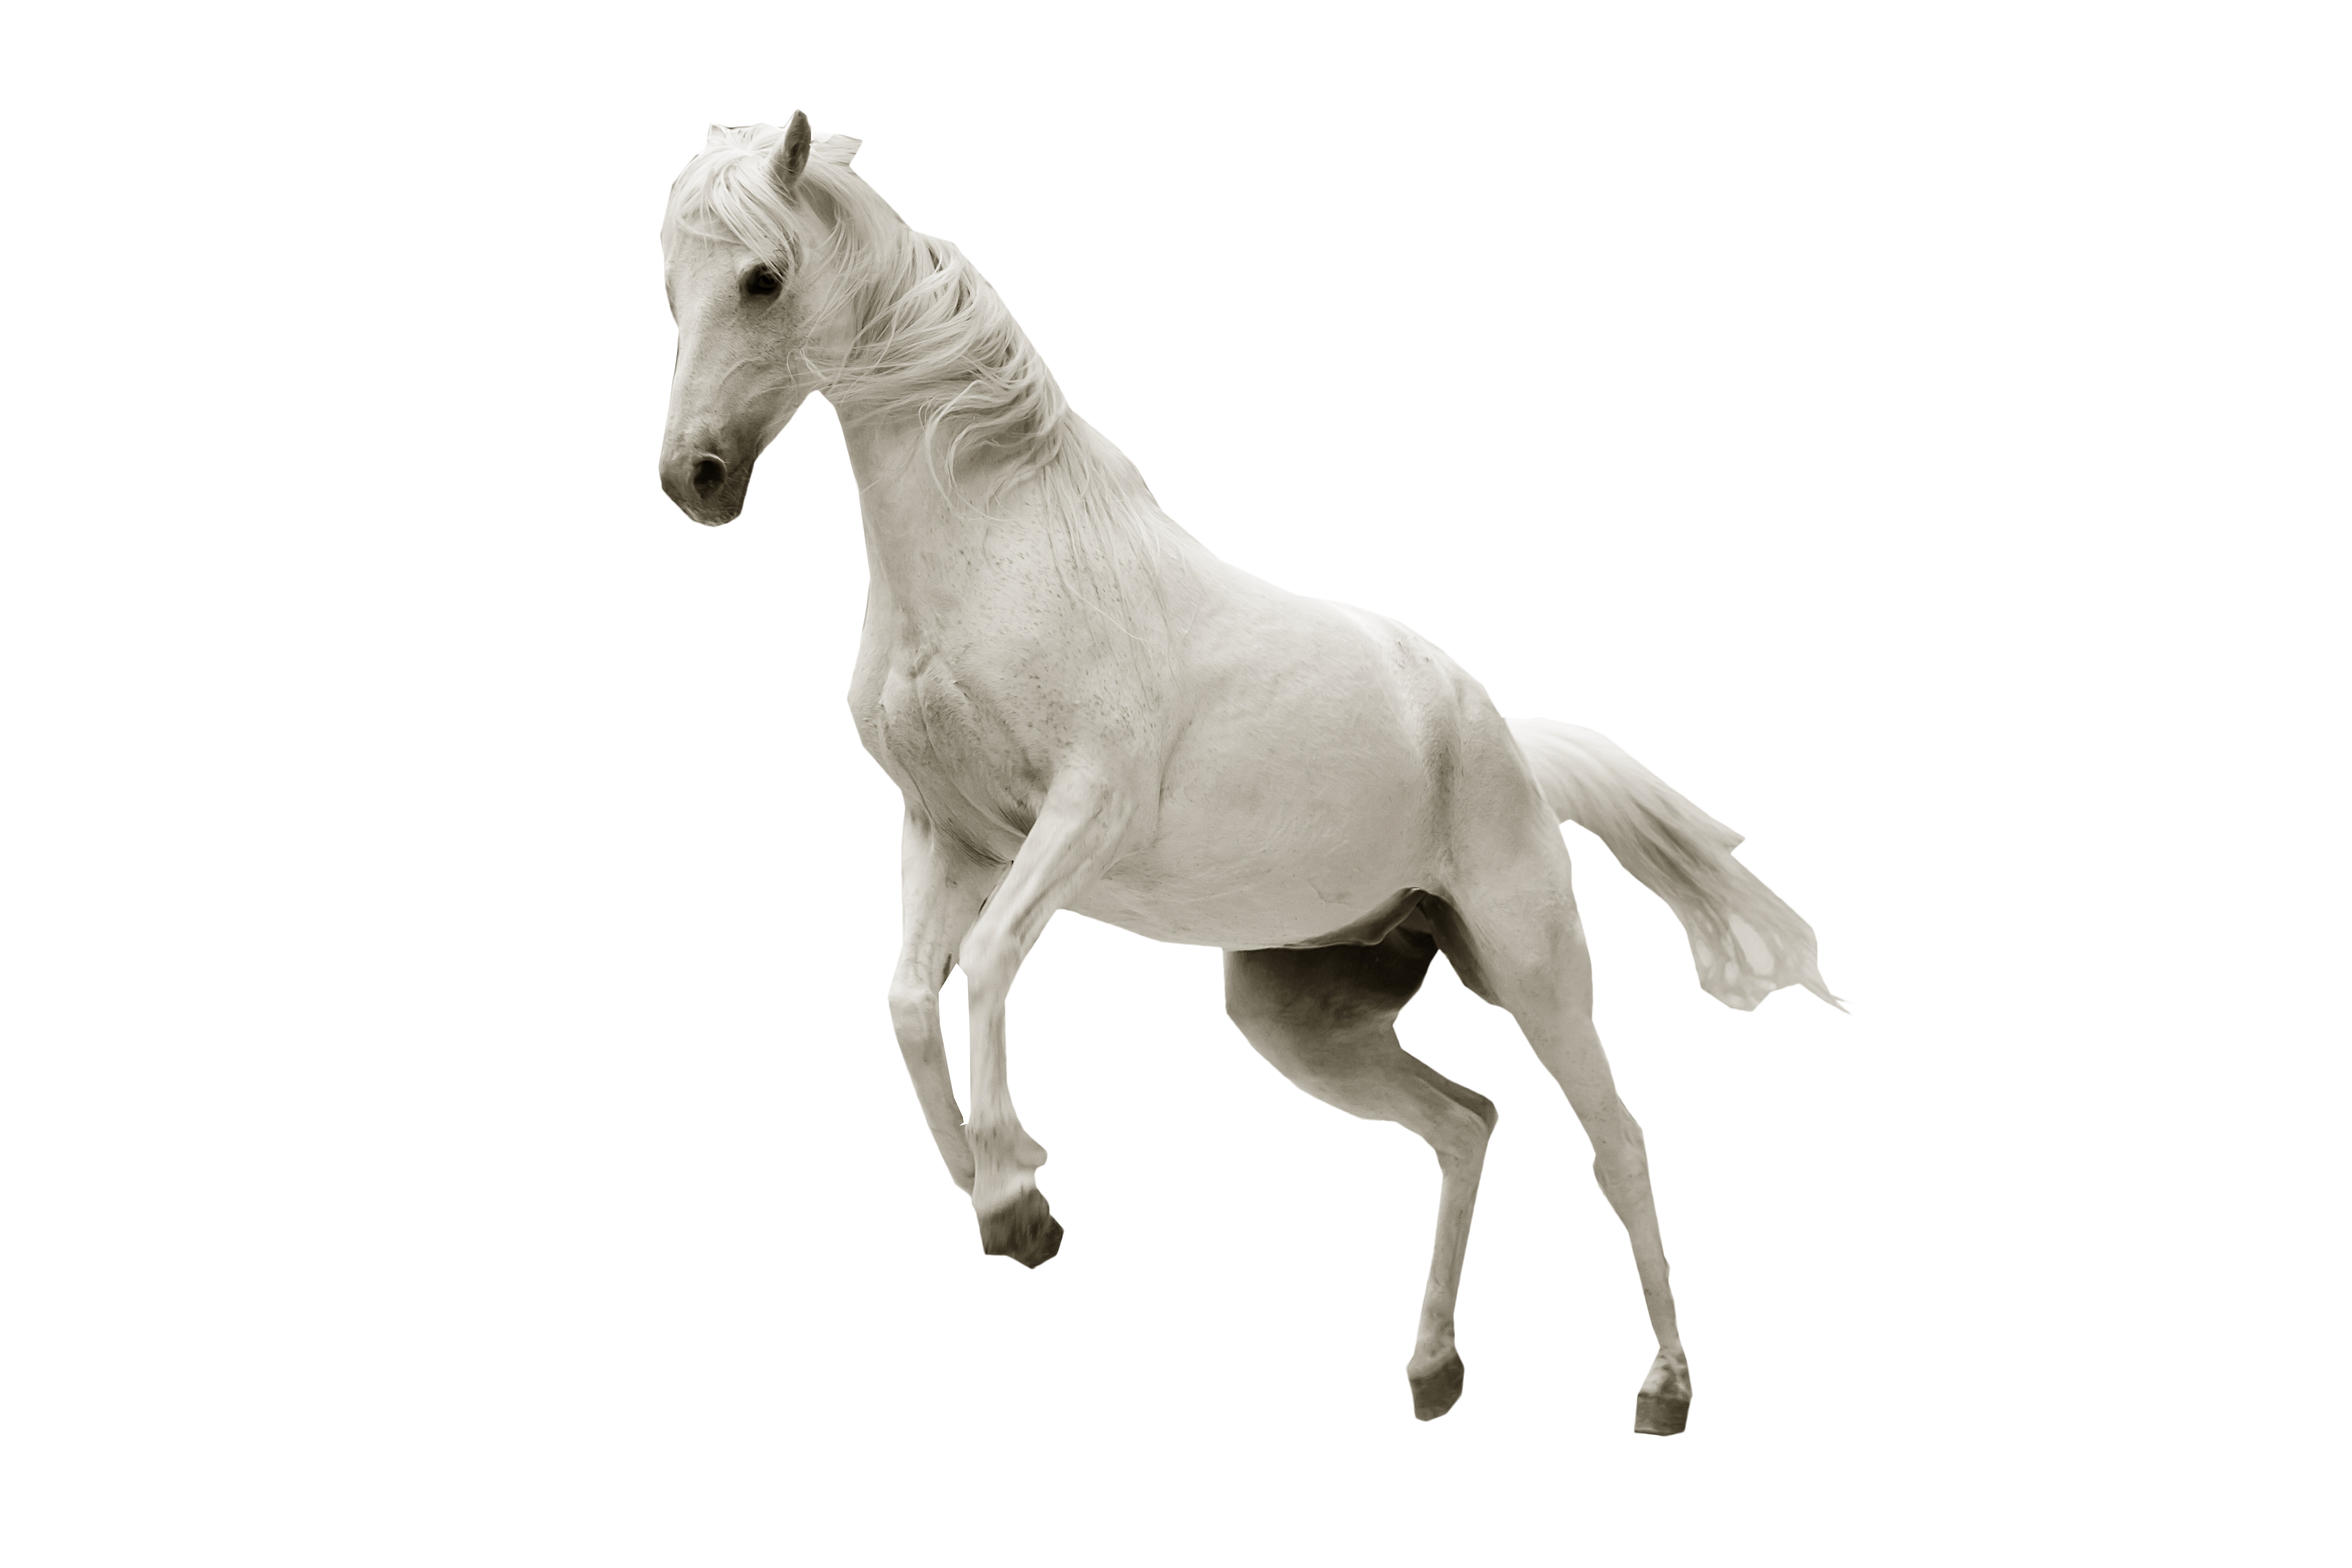 White Horse Jumping PNG Image.